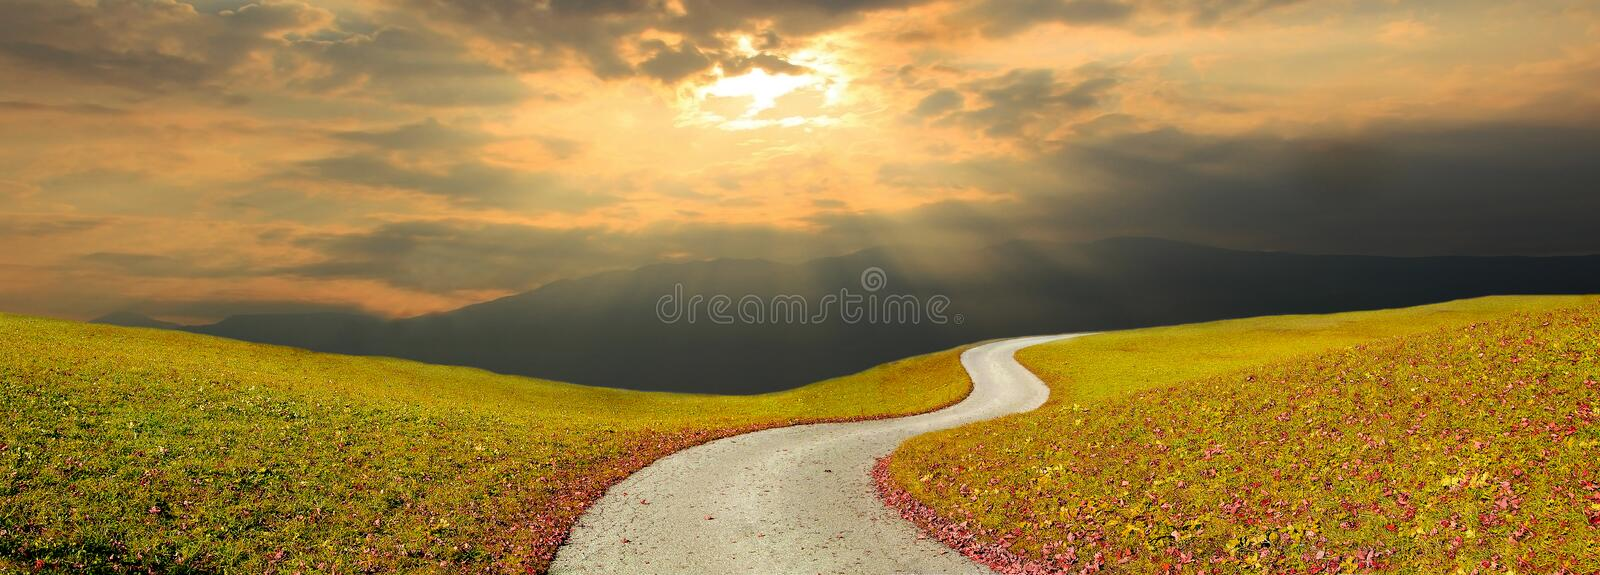 Winding way and sunset sky royalty free stock photo